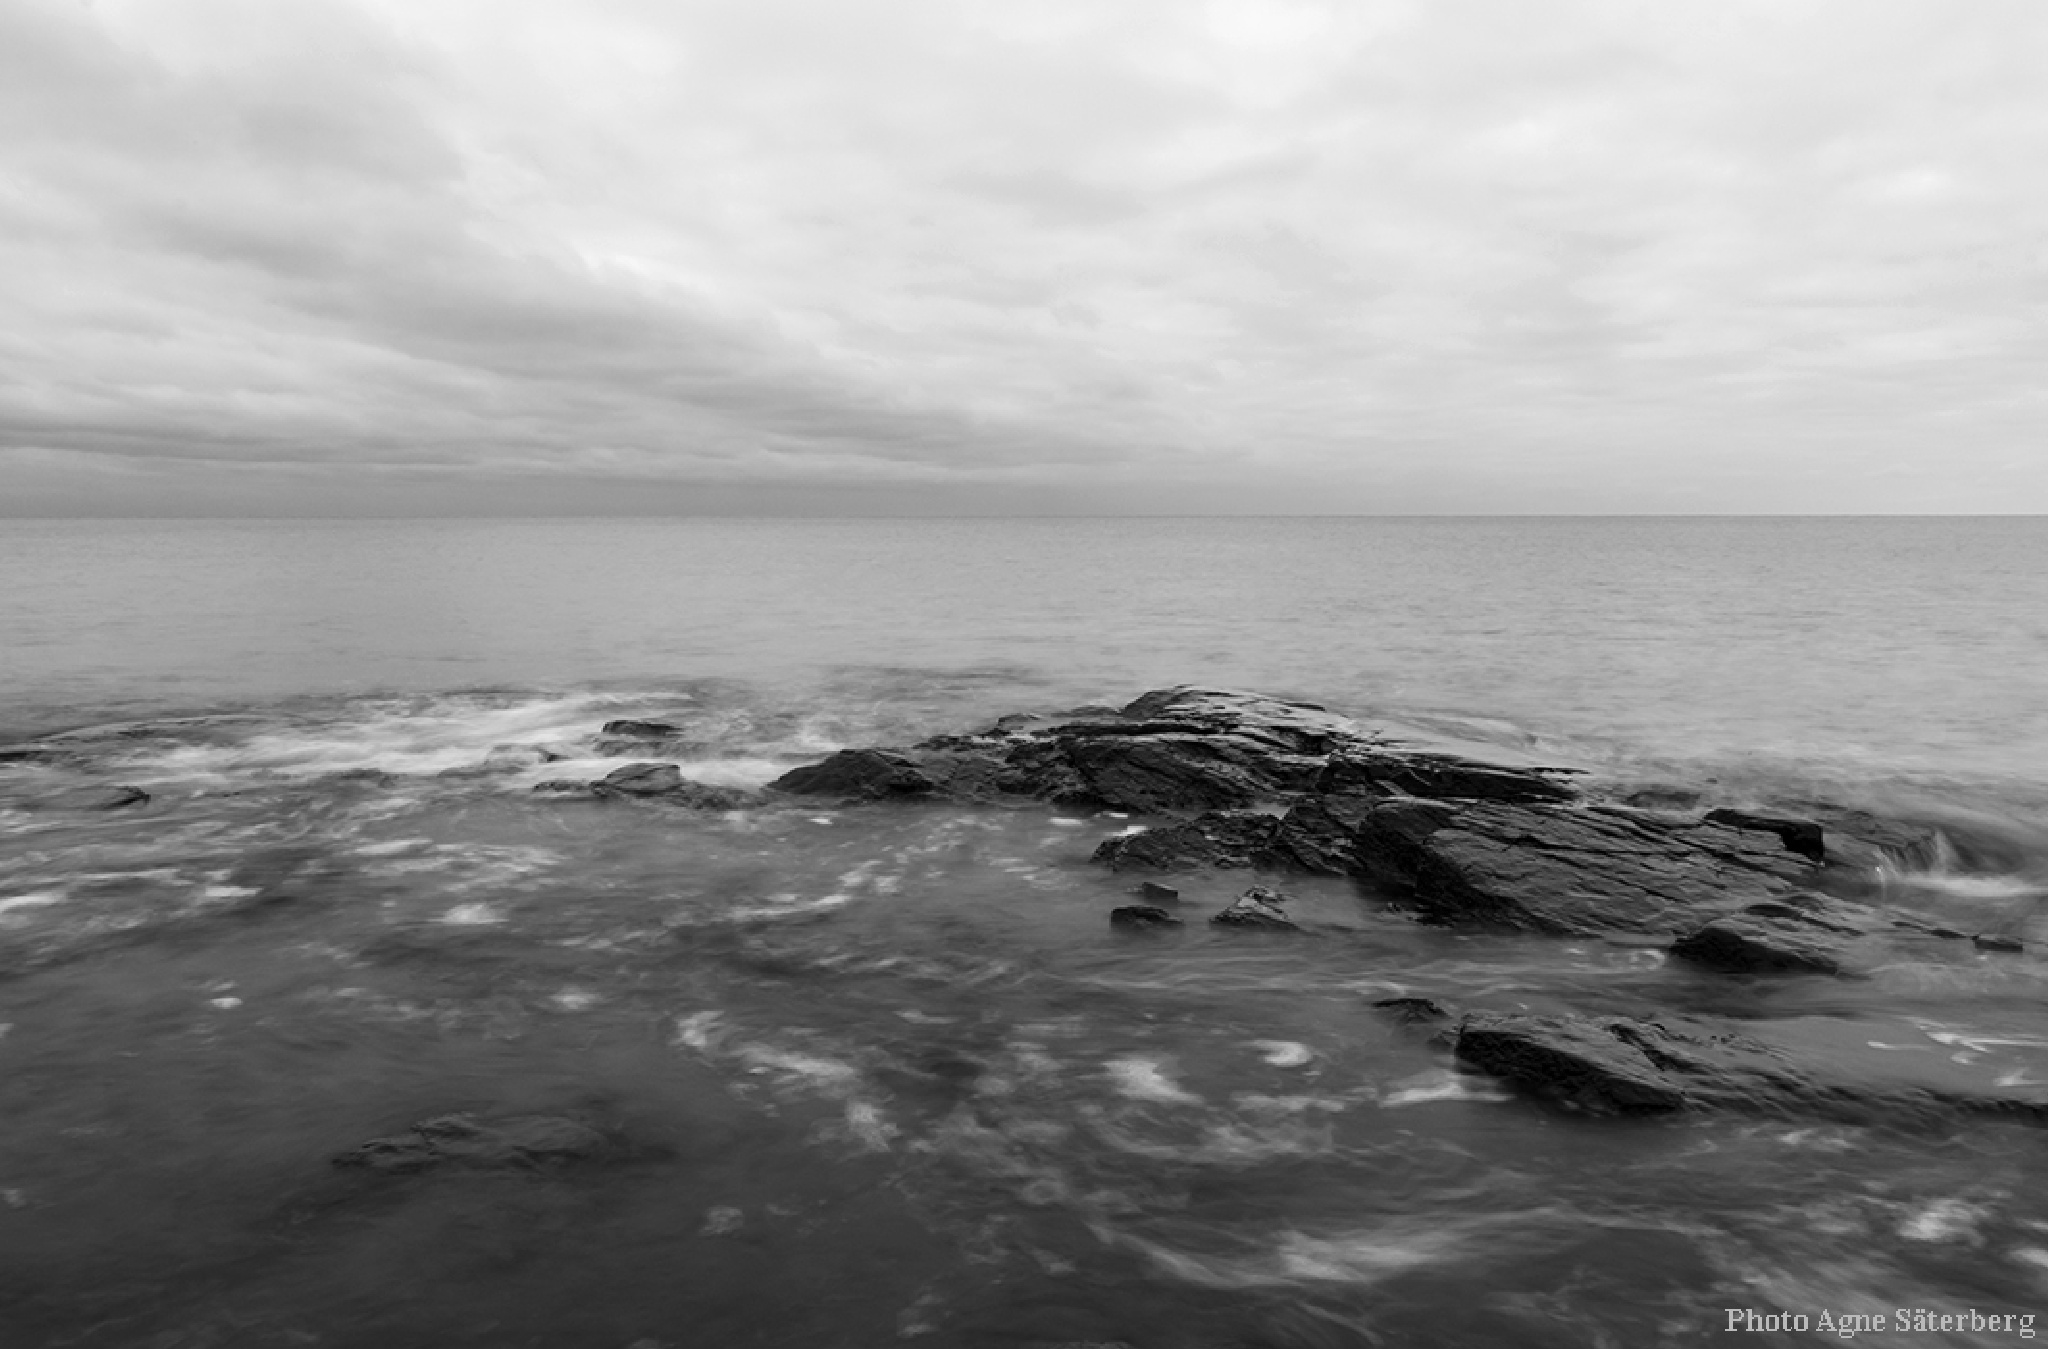 The sea in black and white! by Agne Säterberg